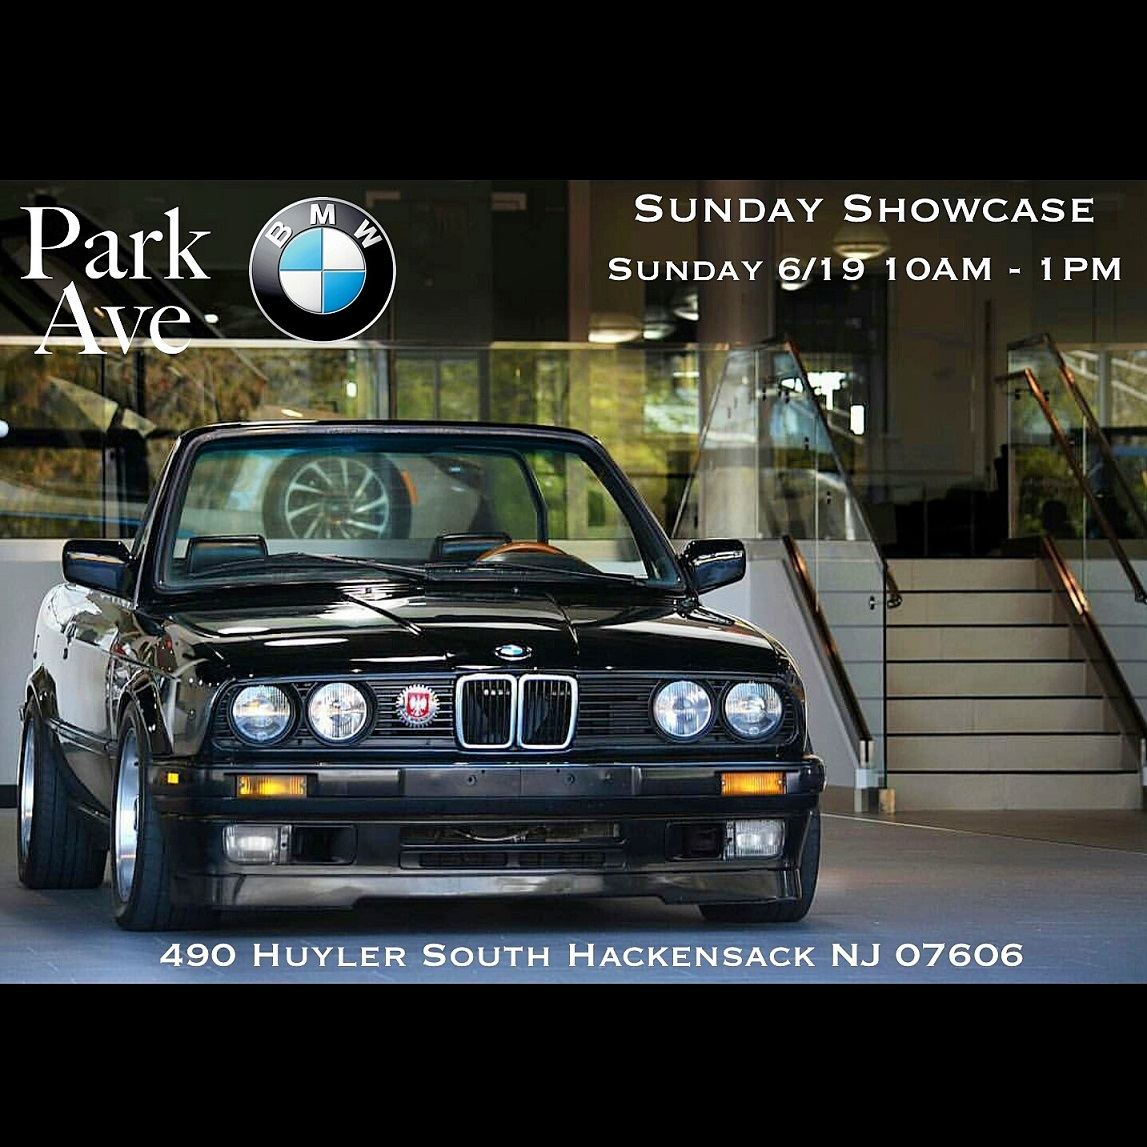 father 39 s day sunday showcase park ave bmw. Black Bedroom Furniture Sets. Home Design Ideas